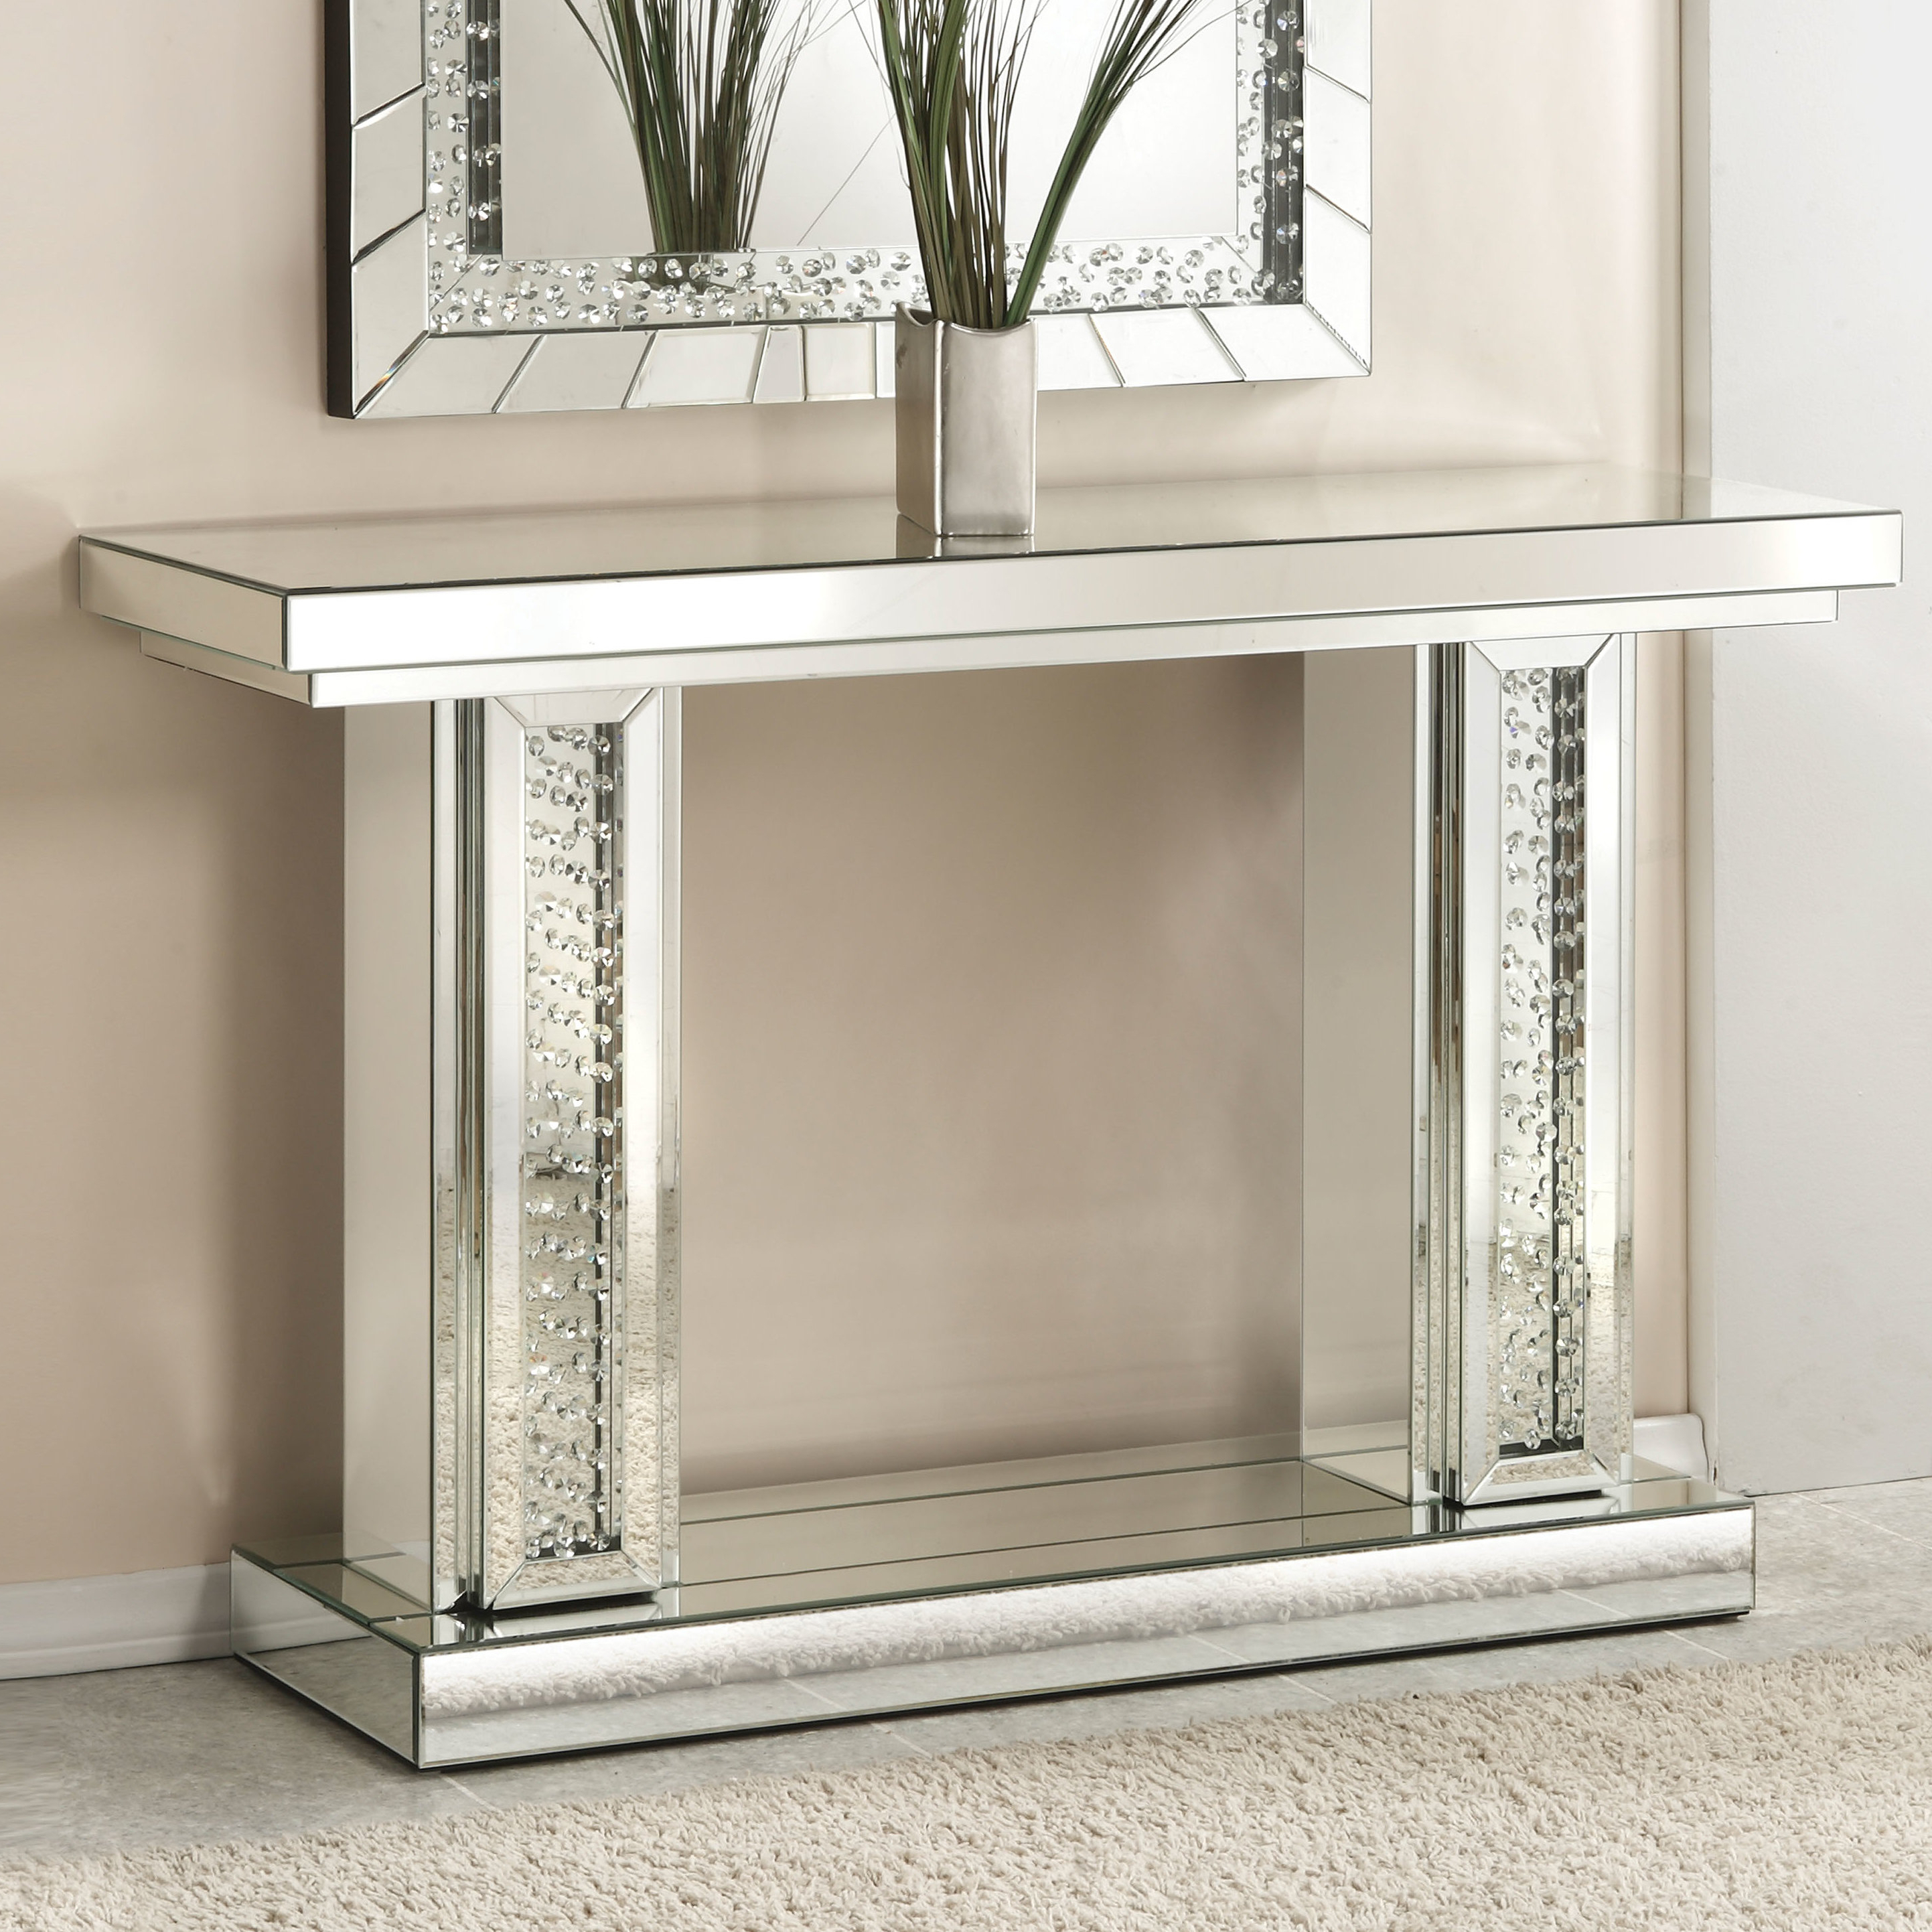 Rosdorf Park Longo Rectangle Mirrored Console Table & Reviews | Wayfair With Regard To Natural Wood Mirrored Media Console Tables (View 14 of 20)